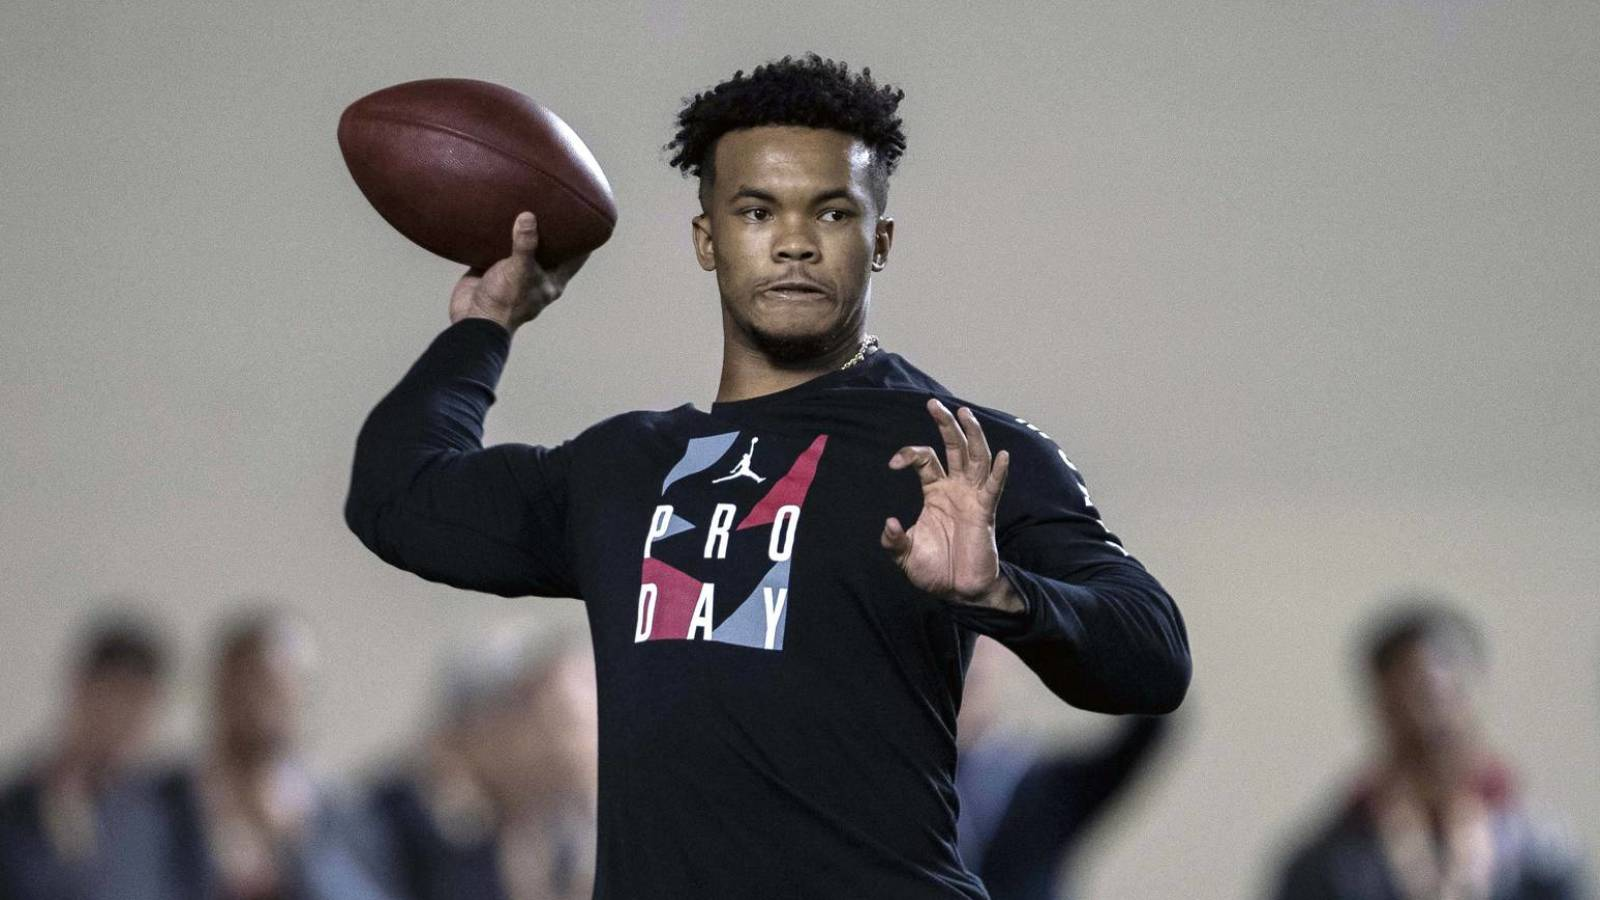 Odds of Kyler Murray being No. 1 overall pick have dramatically shifted